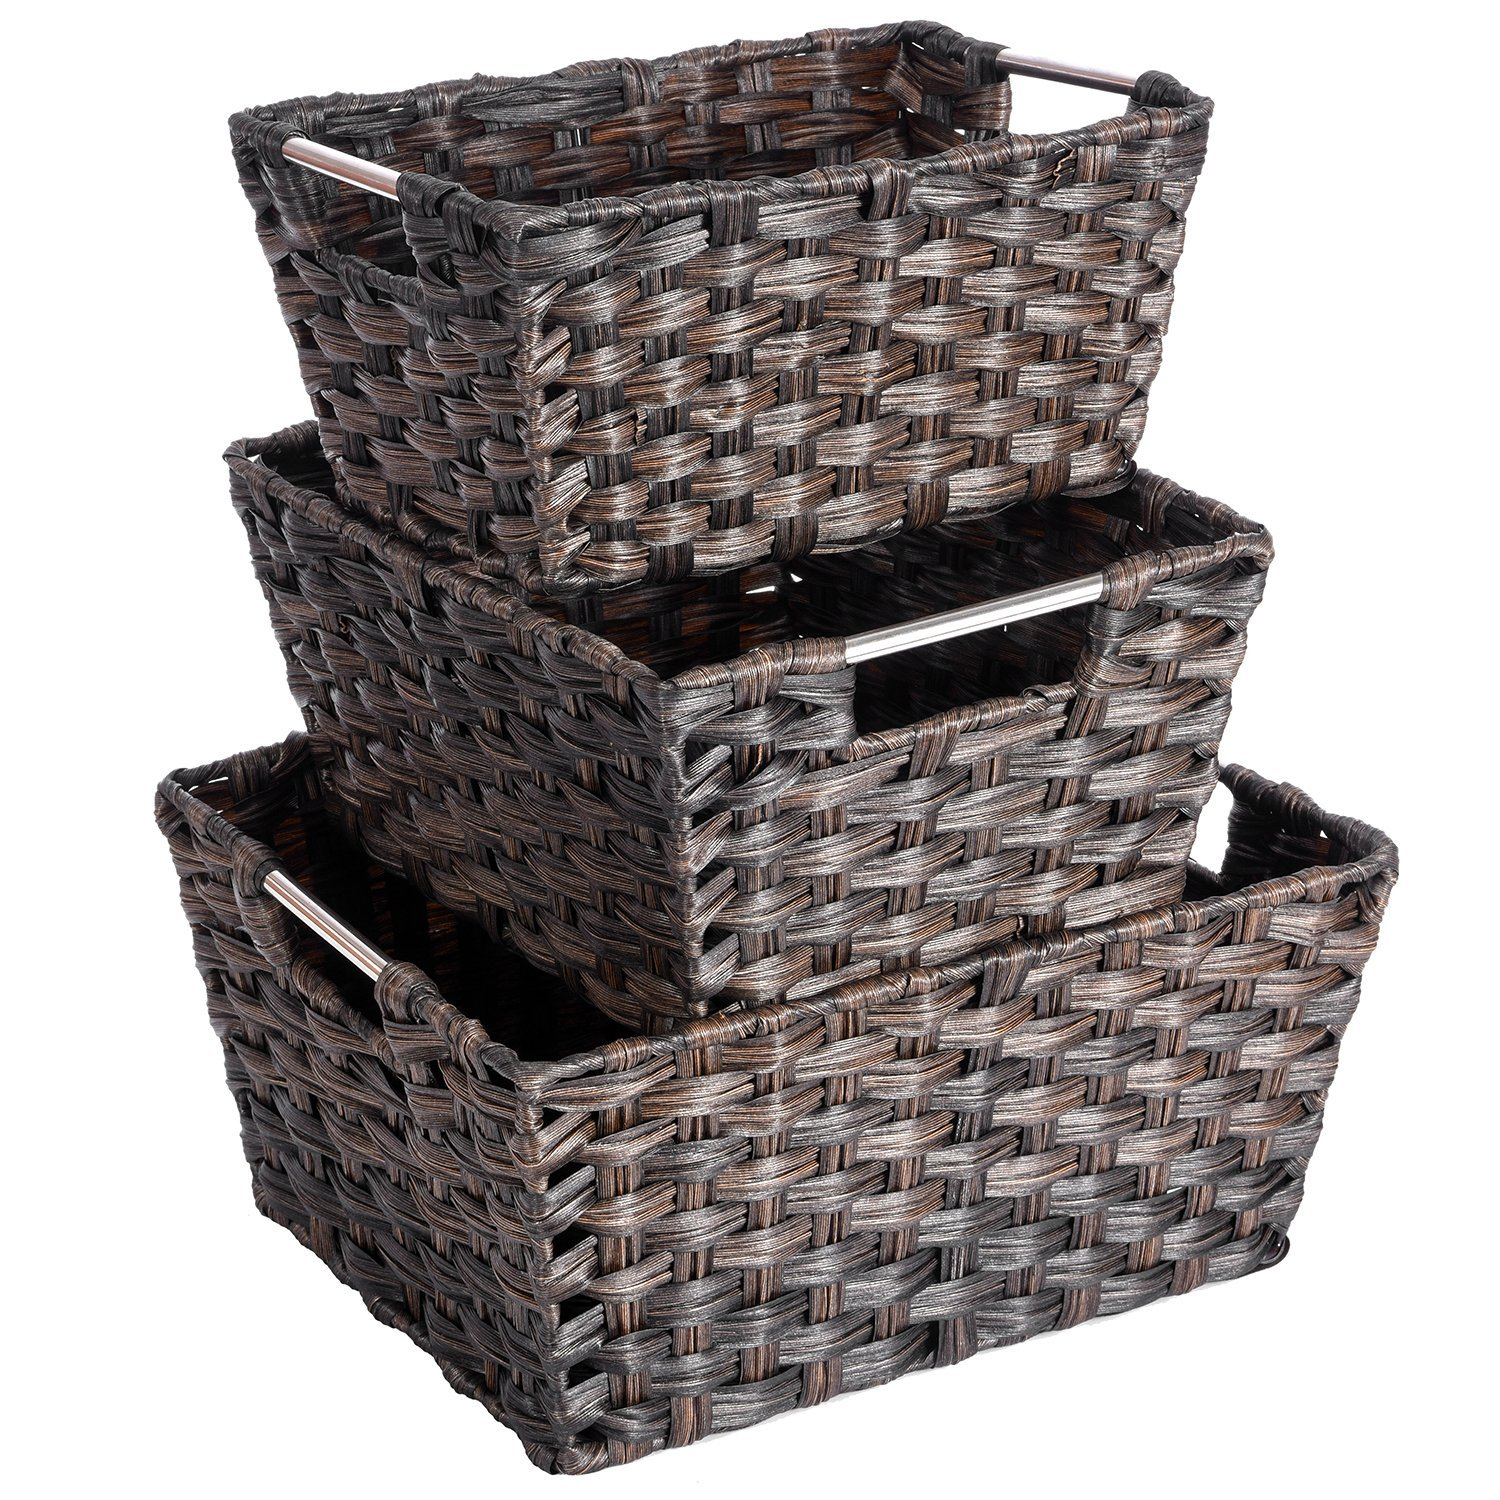 Rattan Basket, Set of 3 Rectangular Wicker Woven Nesting Baskets Storage Bins Containers Organizers Boxes with Handles for Shelves Pantry Bedroom Magazine Organization